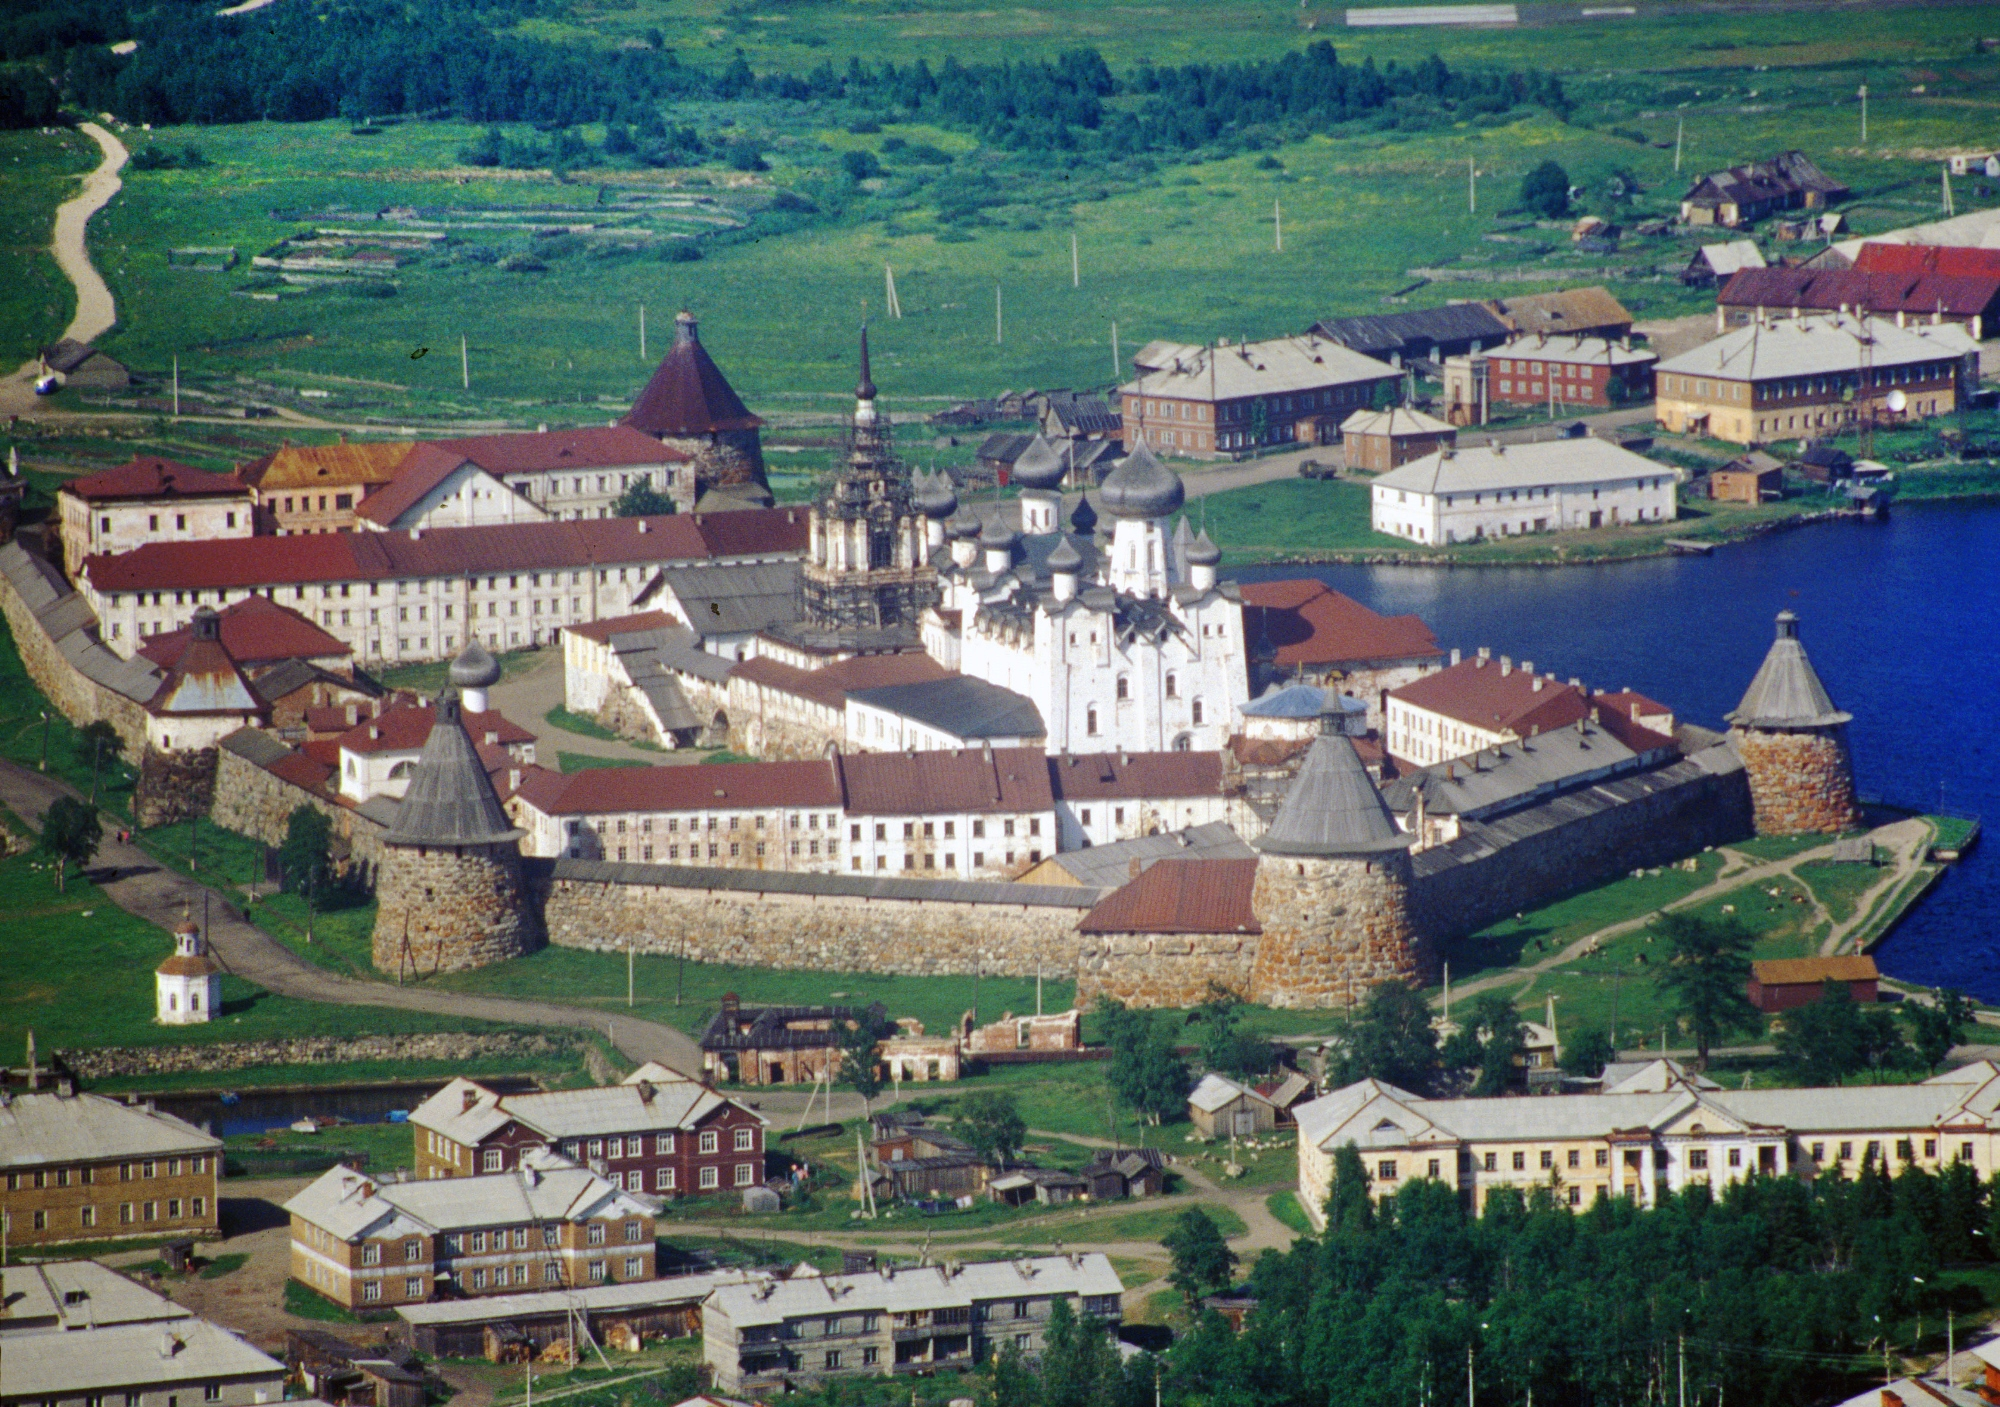 Solovetsky Transfiguration Monastery. Aerial view from south, with Transfiguration Cathedral in center. June 30, 1999. / Photo: William Brumfield